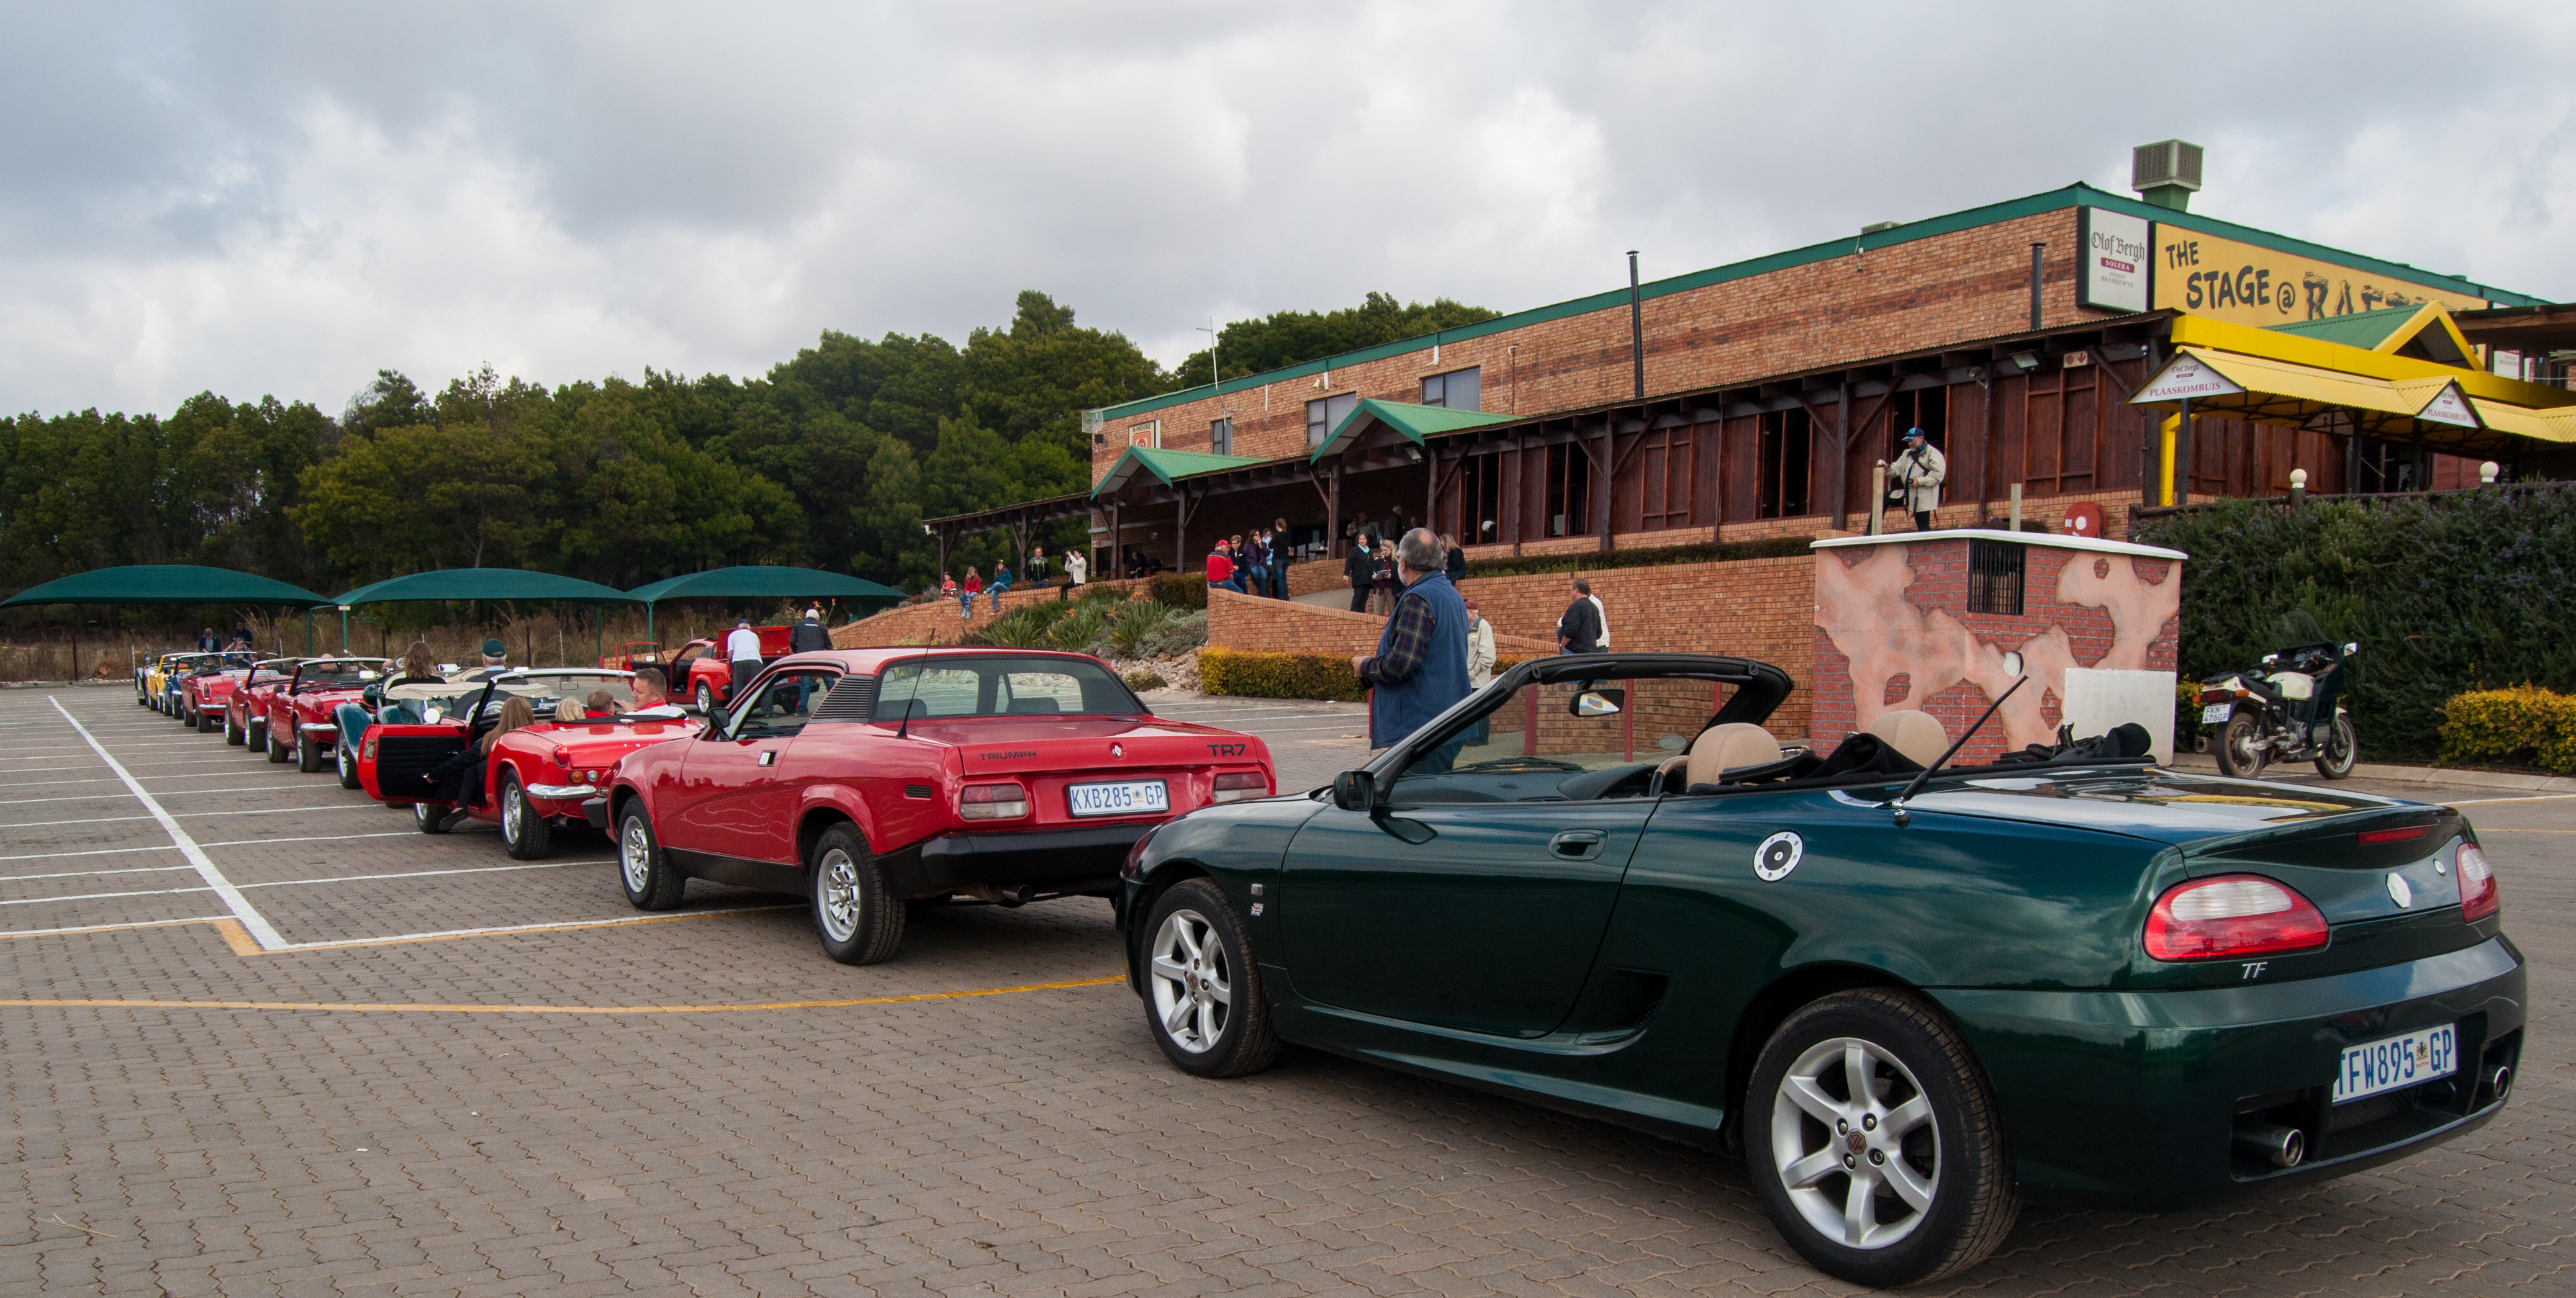 Test Driving Nikon D90 Video With 10 >> MG TF, Triumph TR7 and other classic cars | Flickr - Photo Sharing!